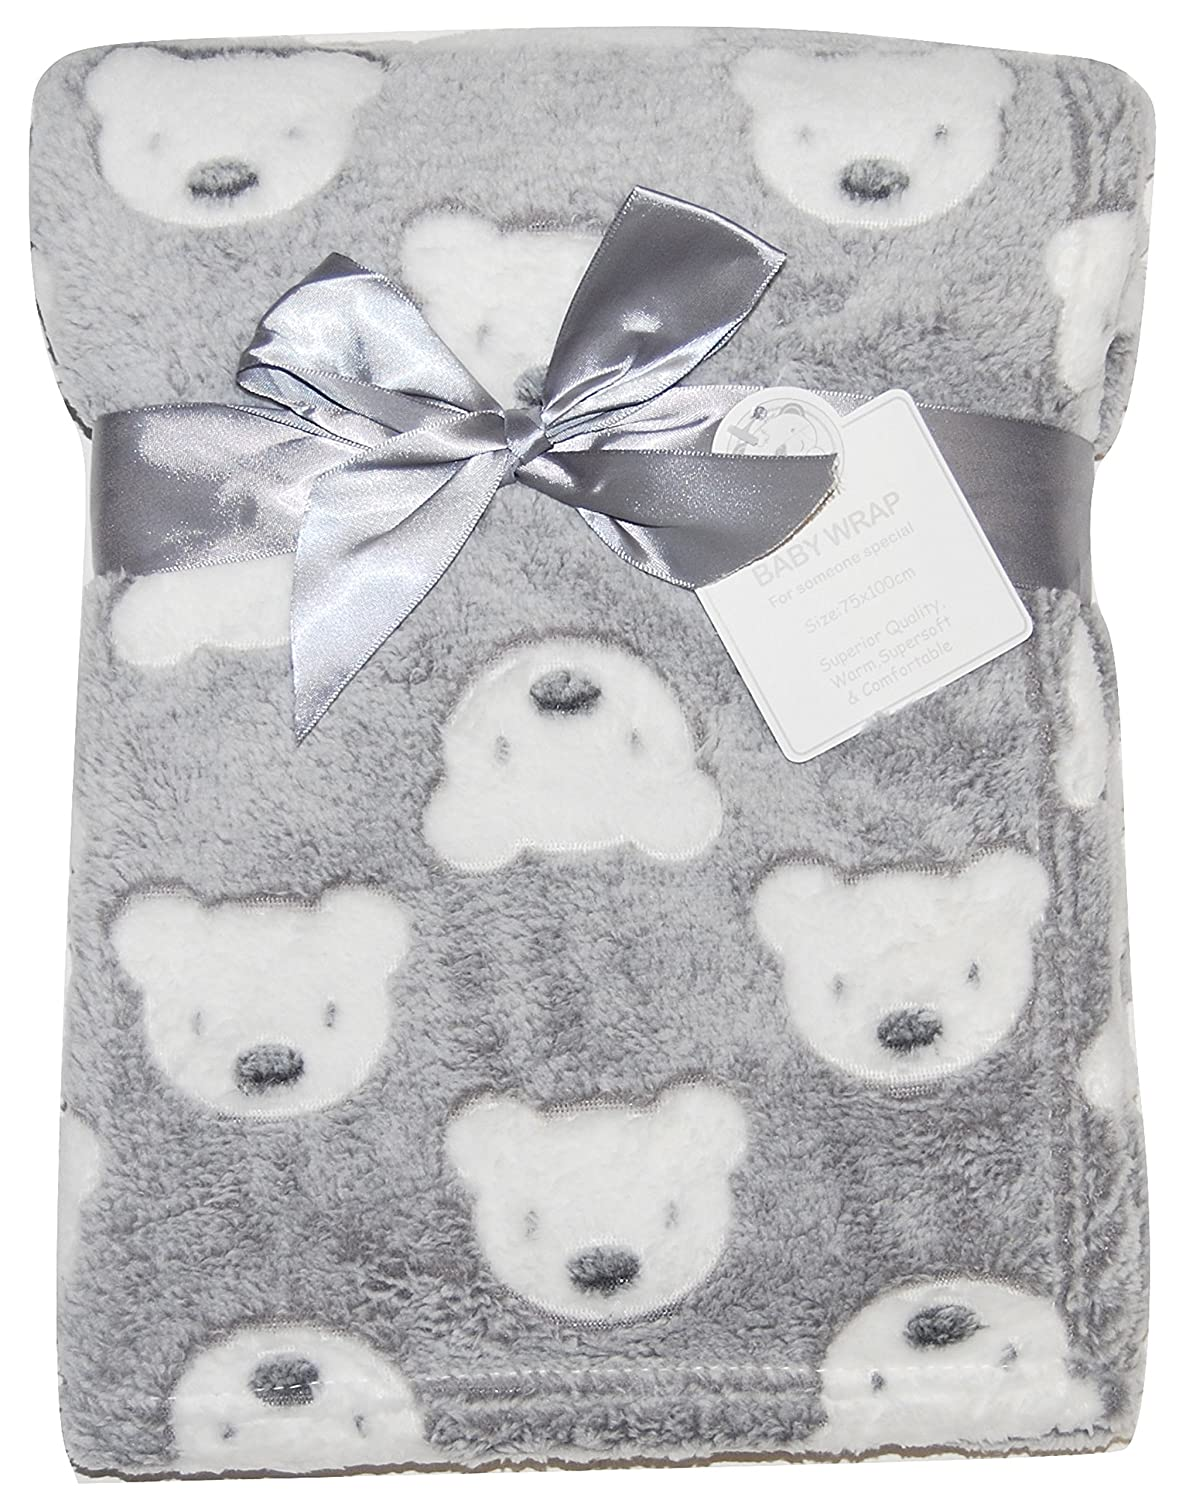 Baby Boy Girl Unisex Soft Fleece Wrap Blanket Pram Cot Crib Moses Basket Grey Teddy Snuggle Baby